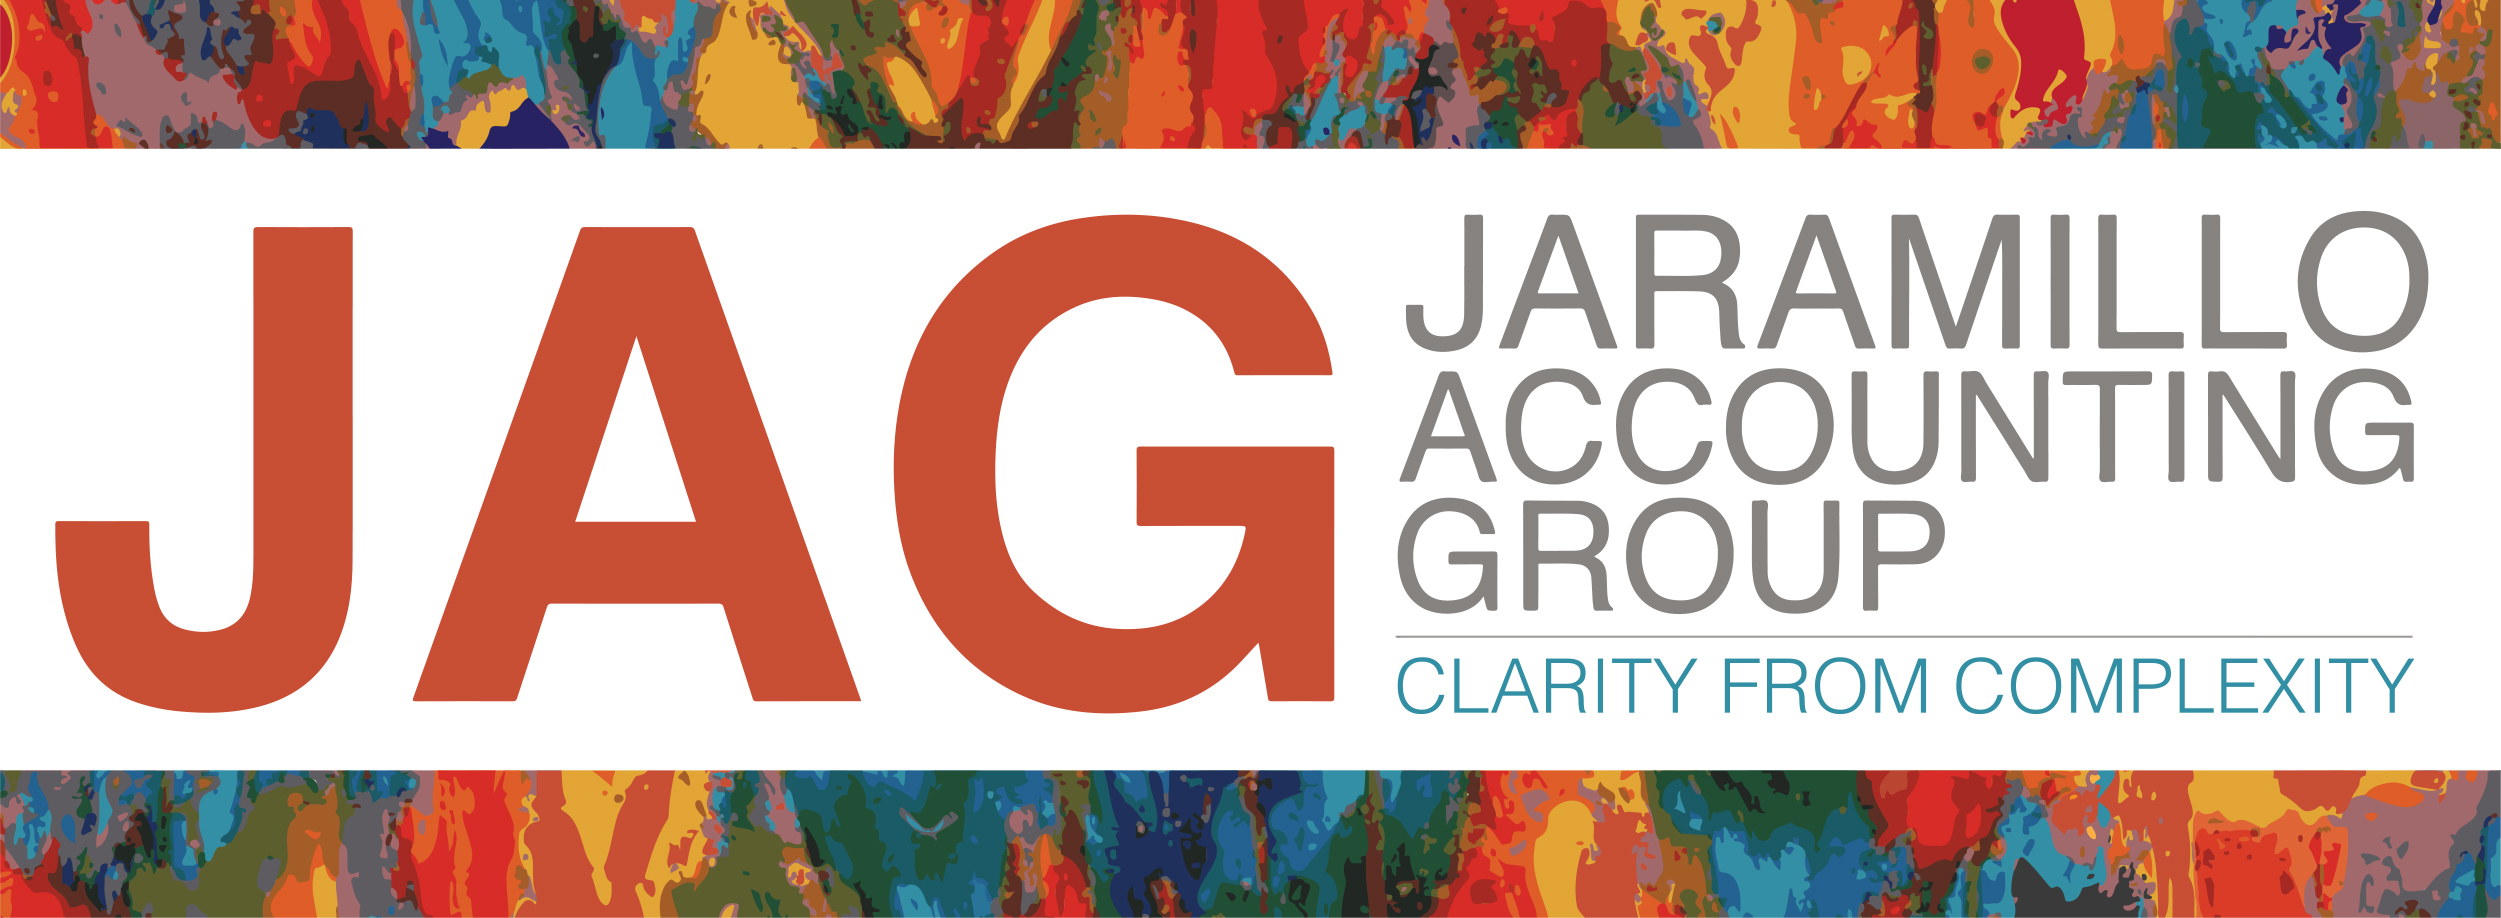 Jaramillo Accounting Group (JAG) Logo